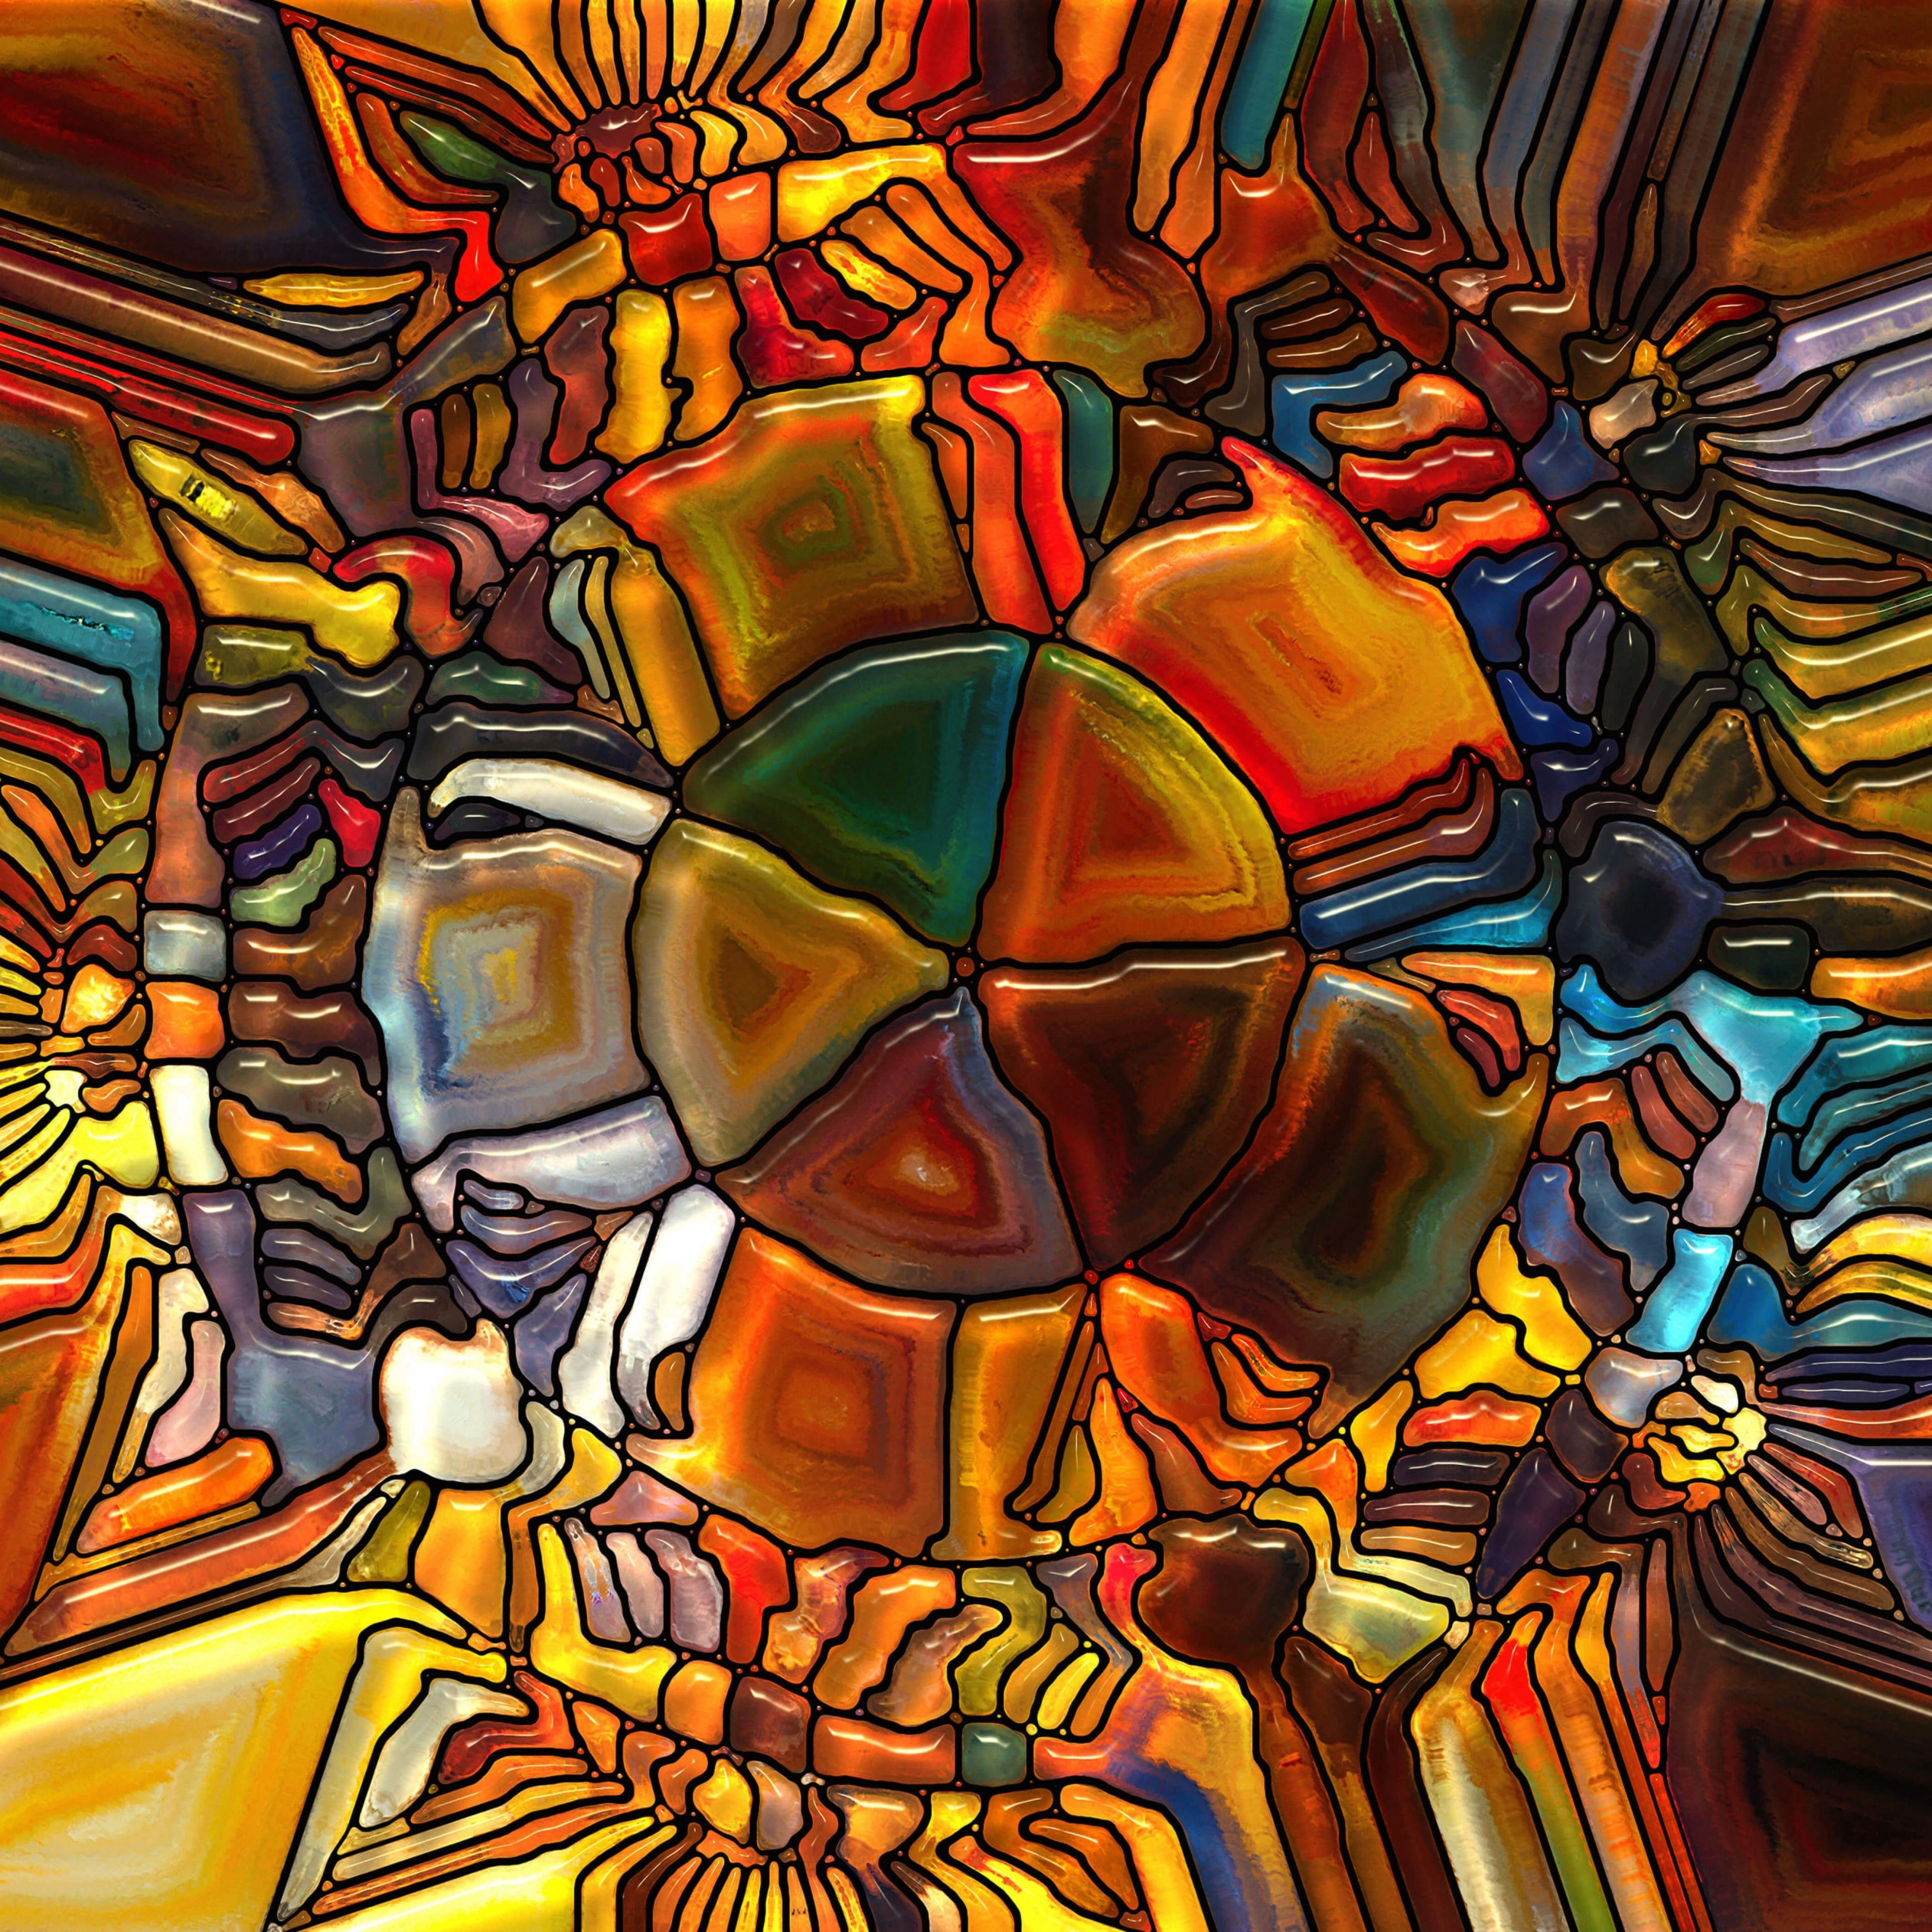 Psychedelic Stained Glass Wallpaper for Apple iPad Air